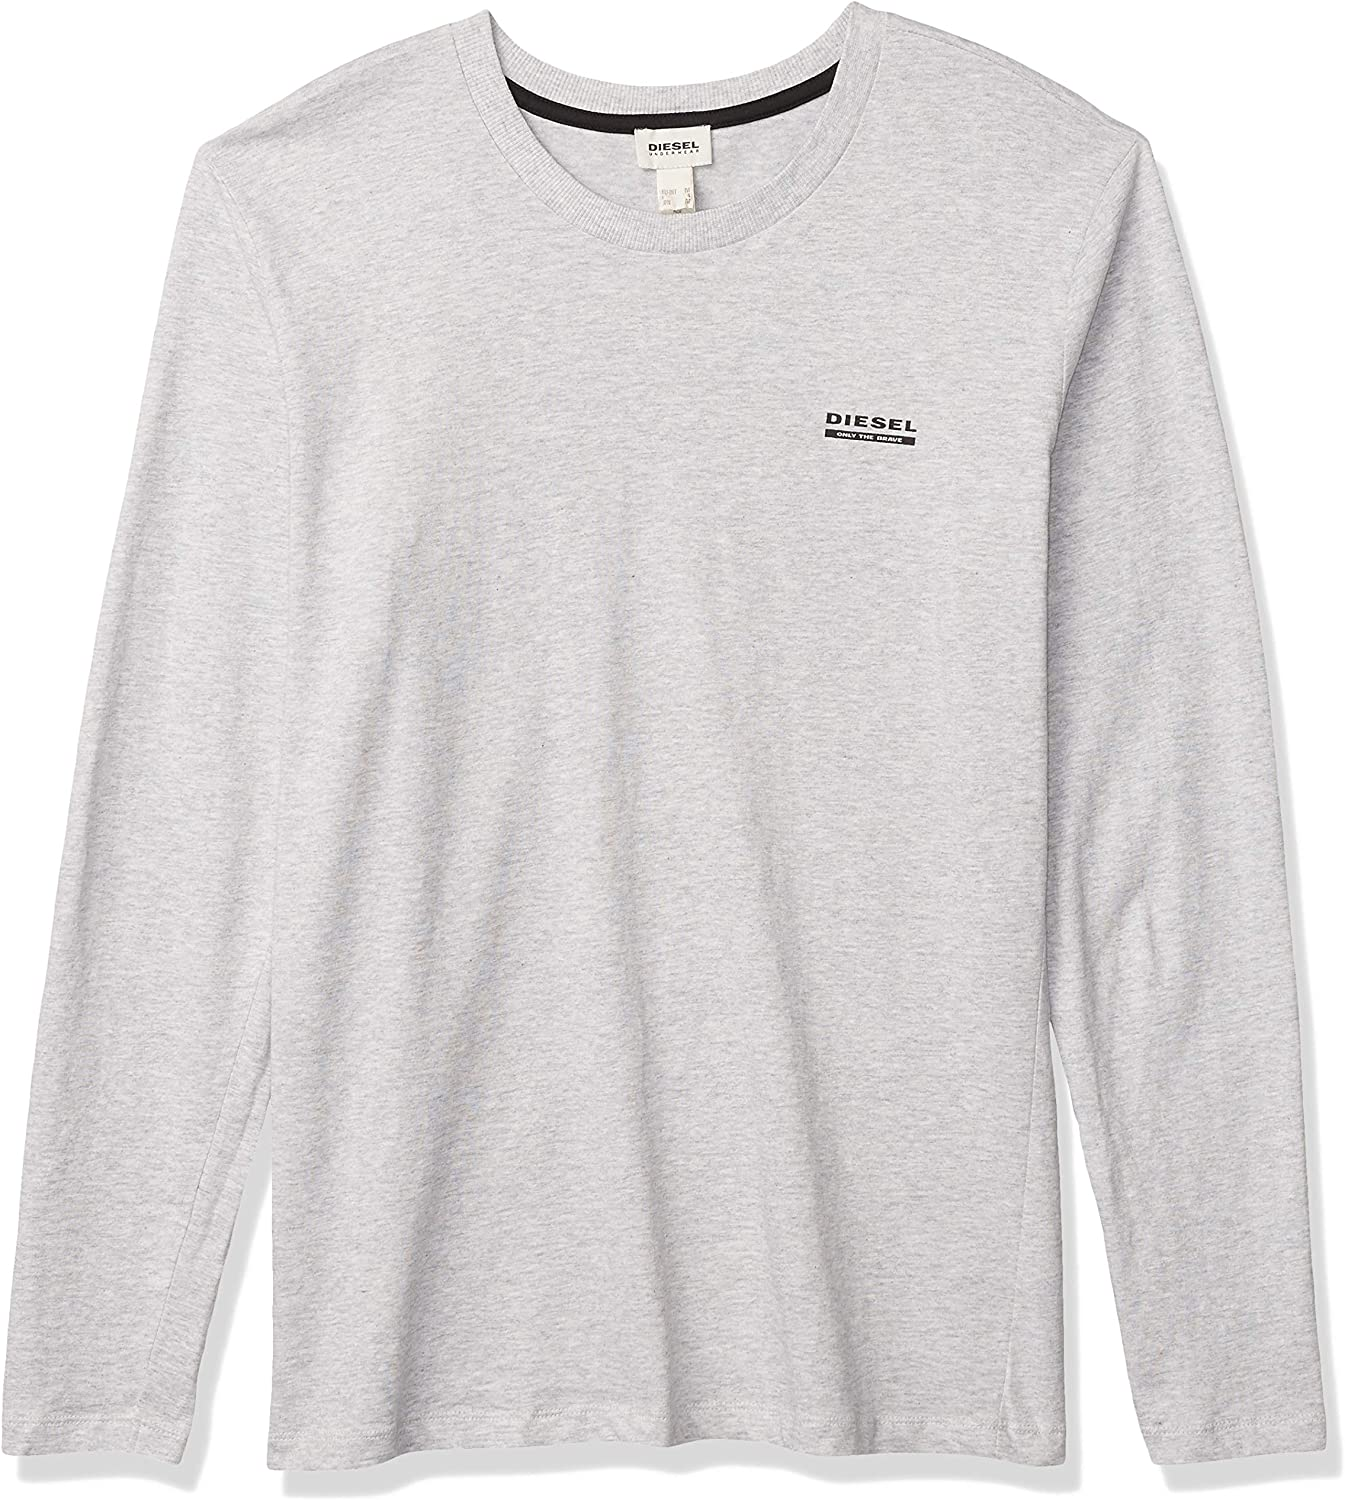 Diesel Men's Justin Long Sleeve Sleepwear Top